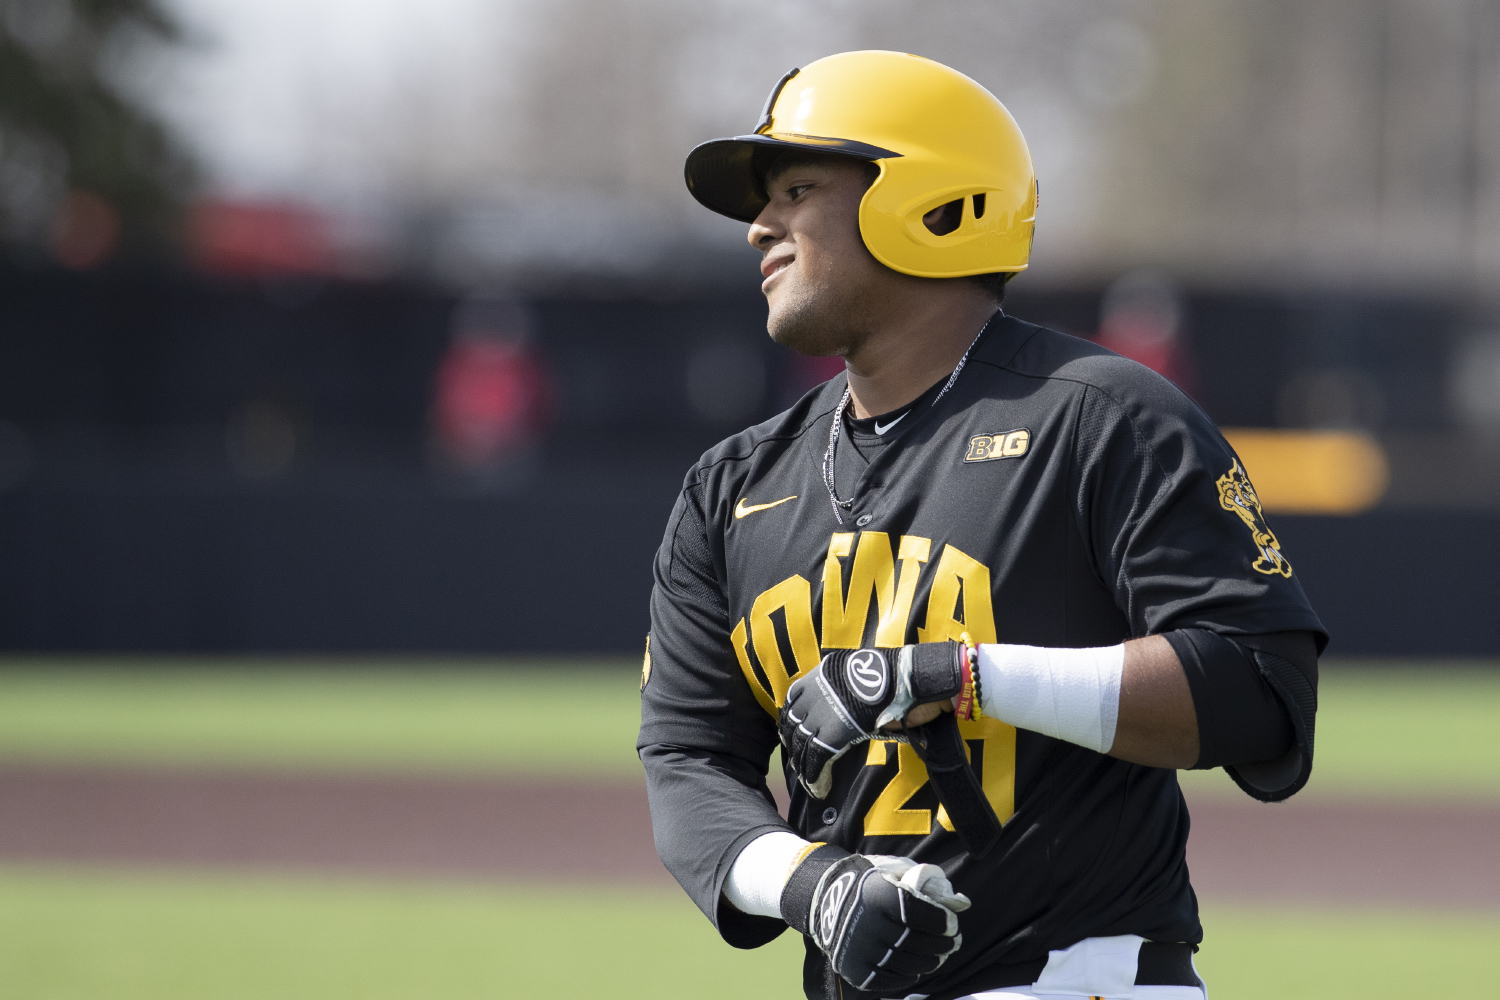 Iowa infielder Izaya Fullard takes off his gloves after bunting to first during the sixth inning of the afternoon Iowa vs Rutgers game at Duane Banks Field on Saturday, April 7, 2019. The Hawkeyes defeated the Scarlet Knights 9-5.